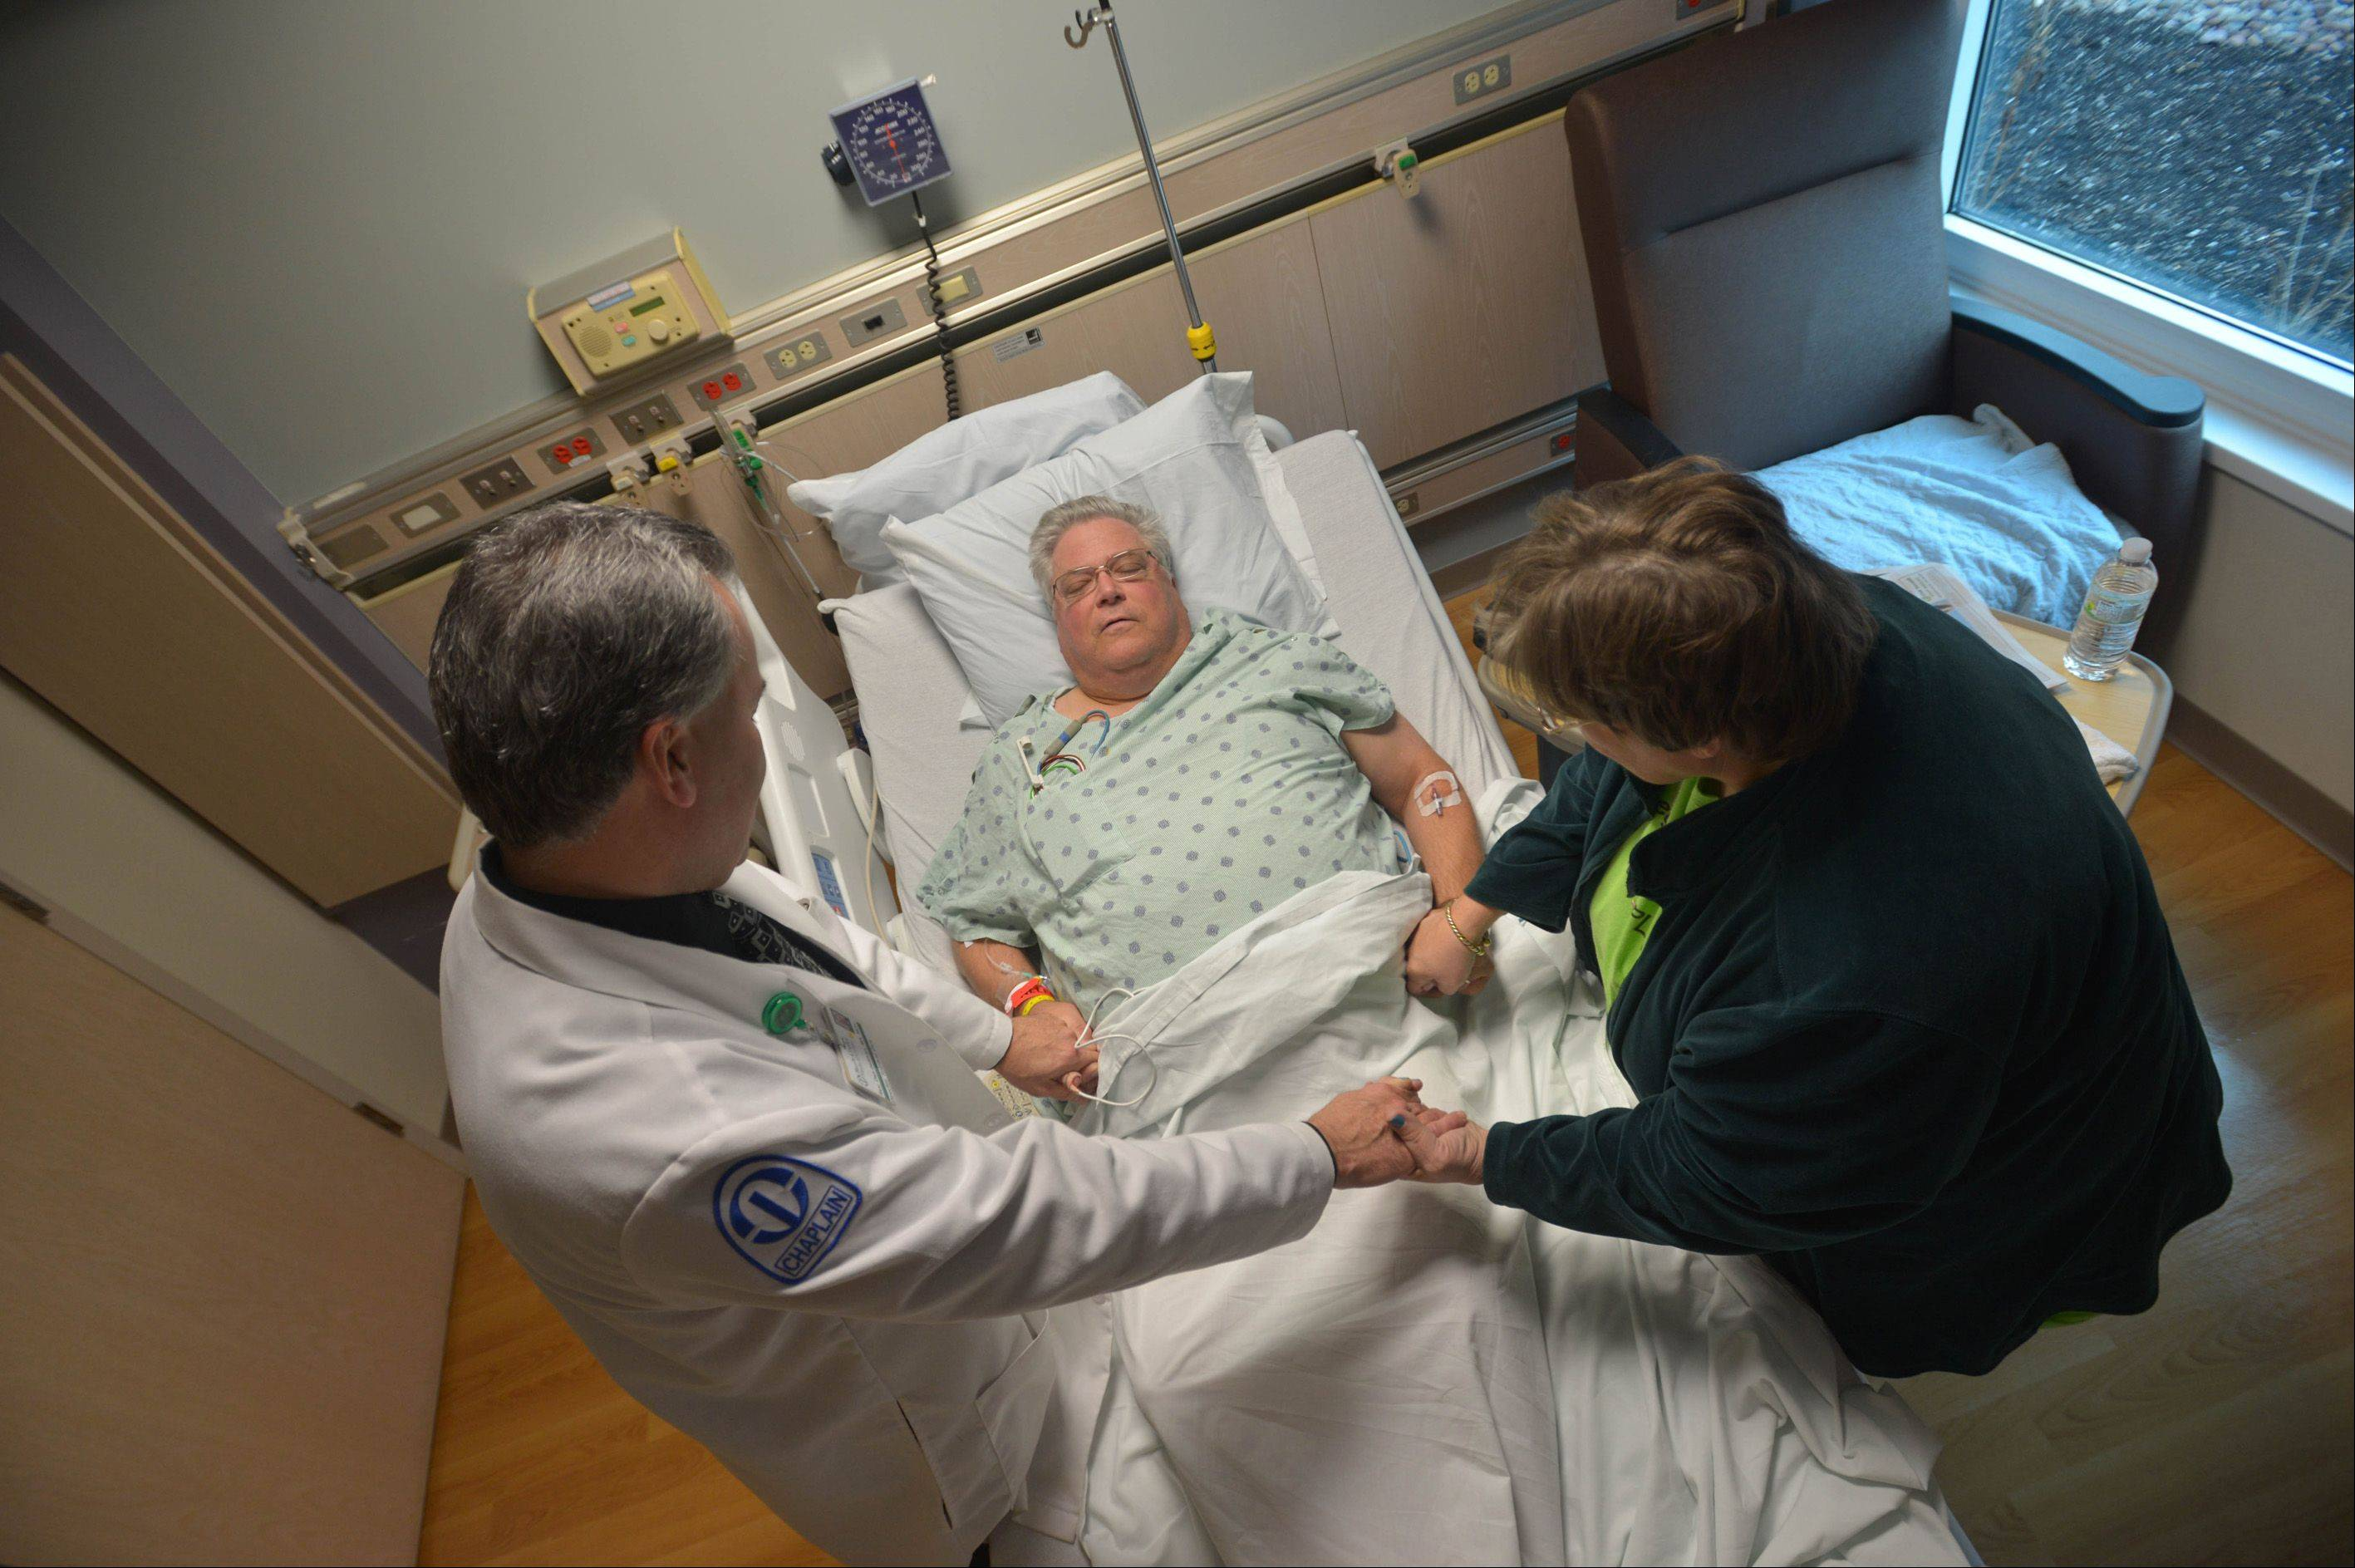 Dan Sullivan takes a moment to pray with Charles Sondgeroth and his wife Joanna of Sandwich during a recent stay at Rush-Copley Medical Center in Aurora.